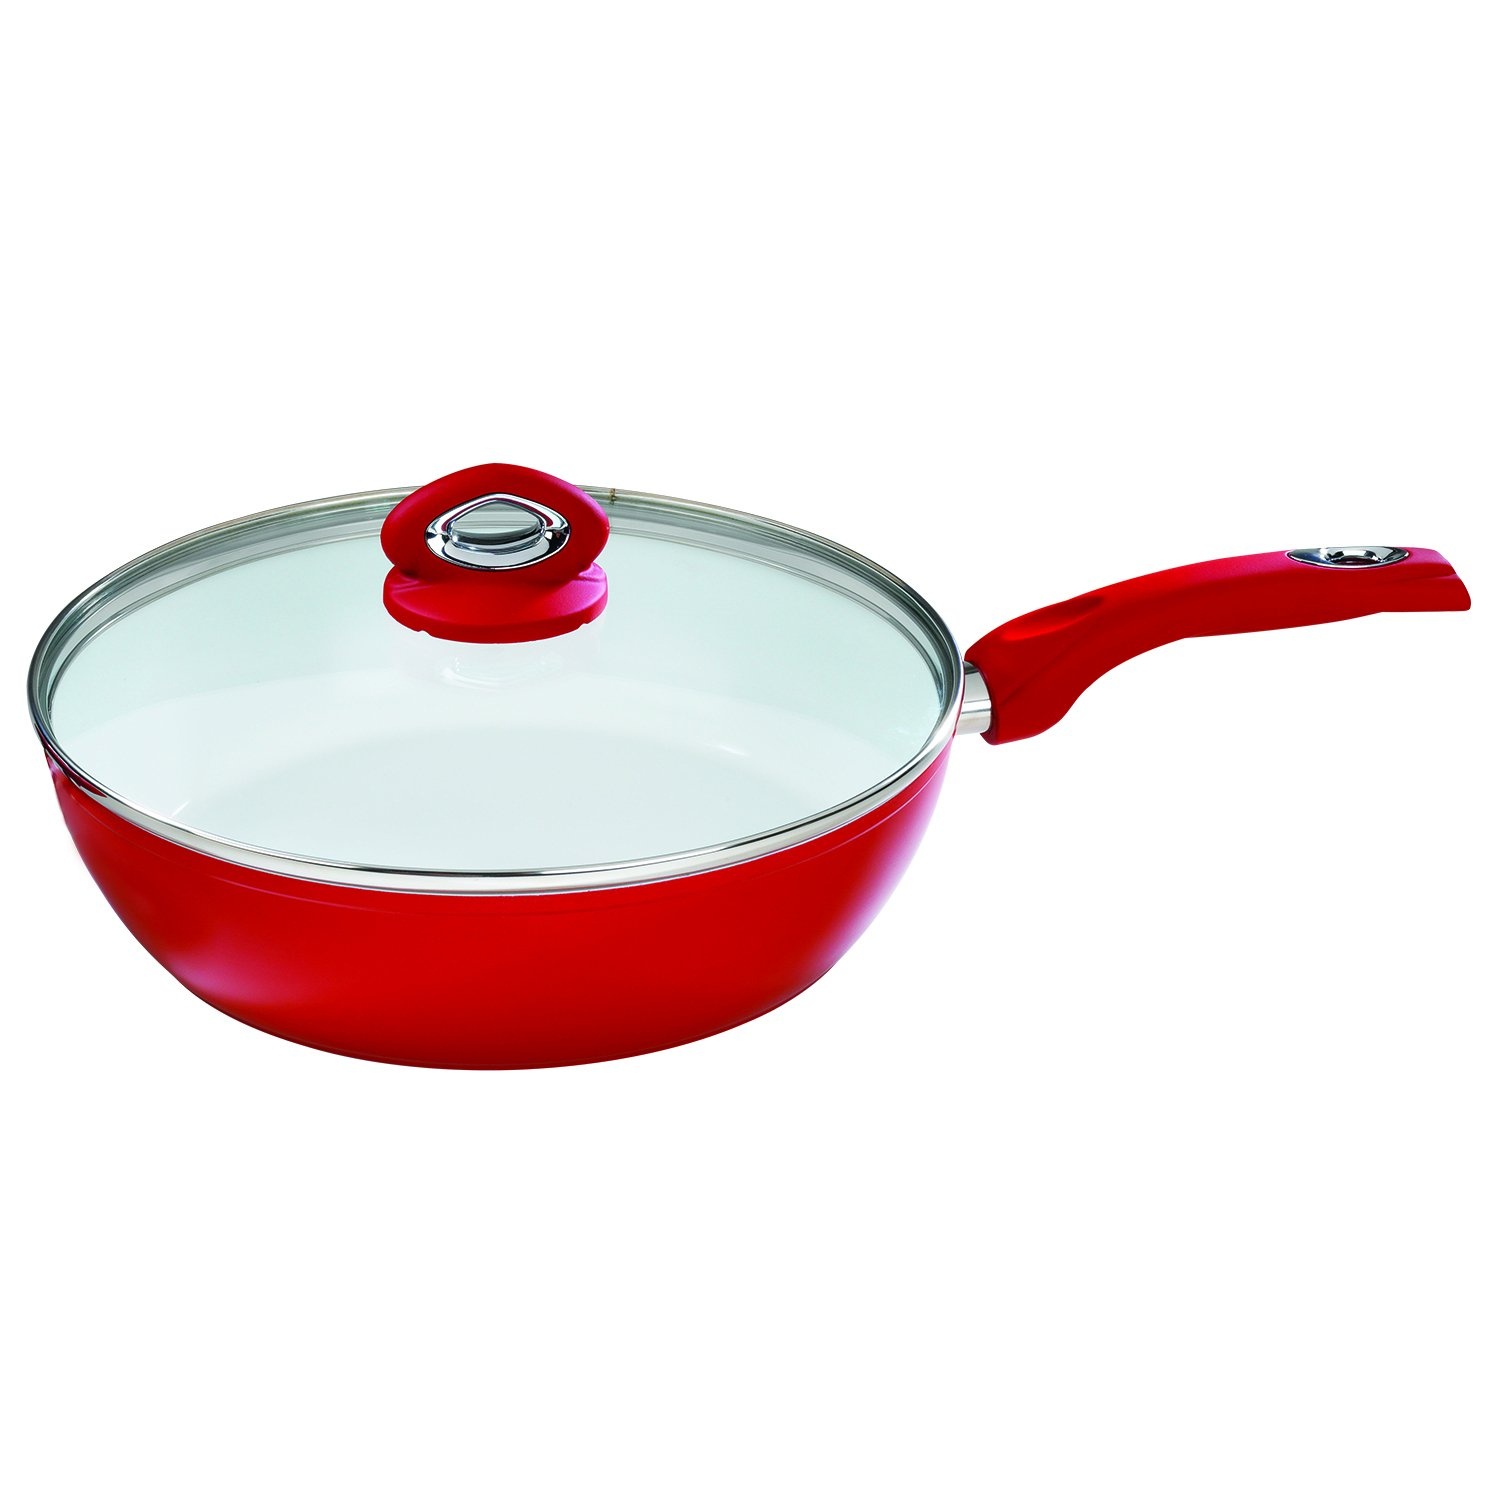 Bialetti Aeternum Red 7197 Covered Deep Saute, 12-inch